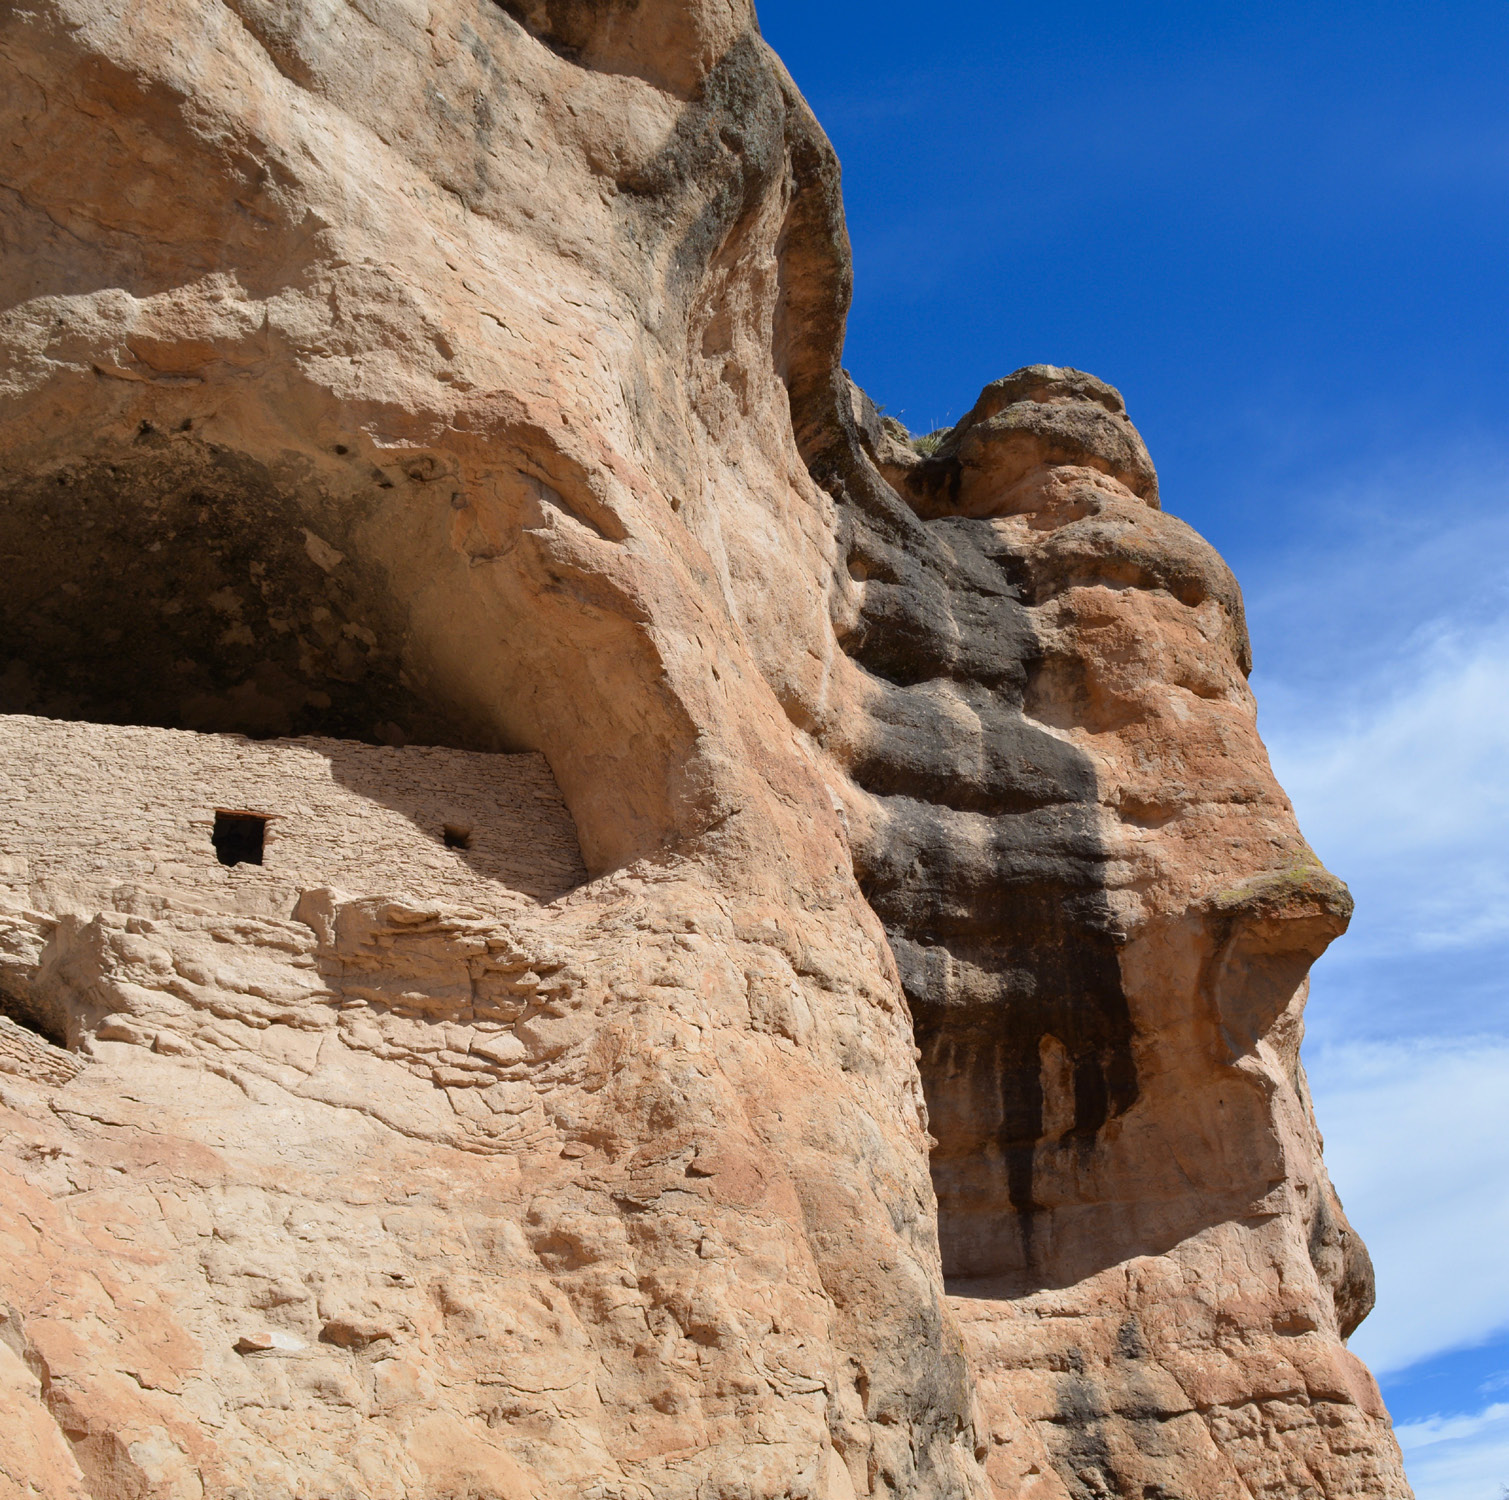 Read about my visit to Gila Cliff Dwellings National Monument on my blog